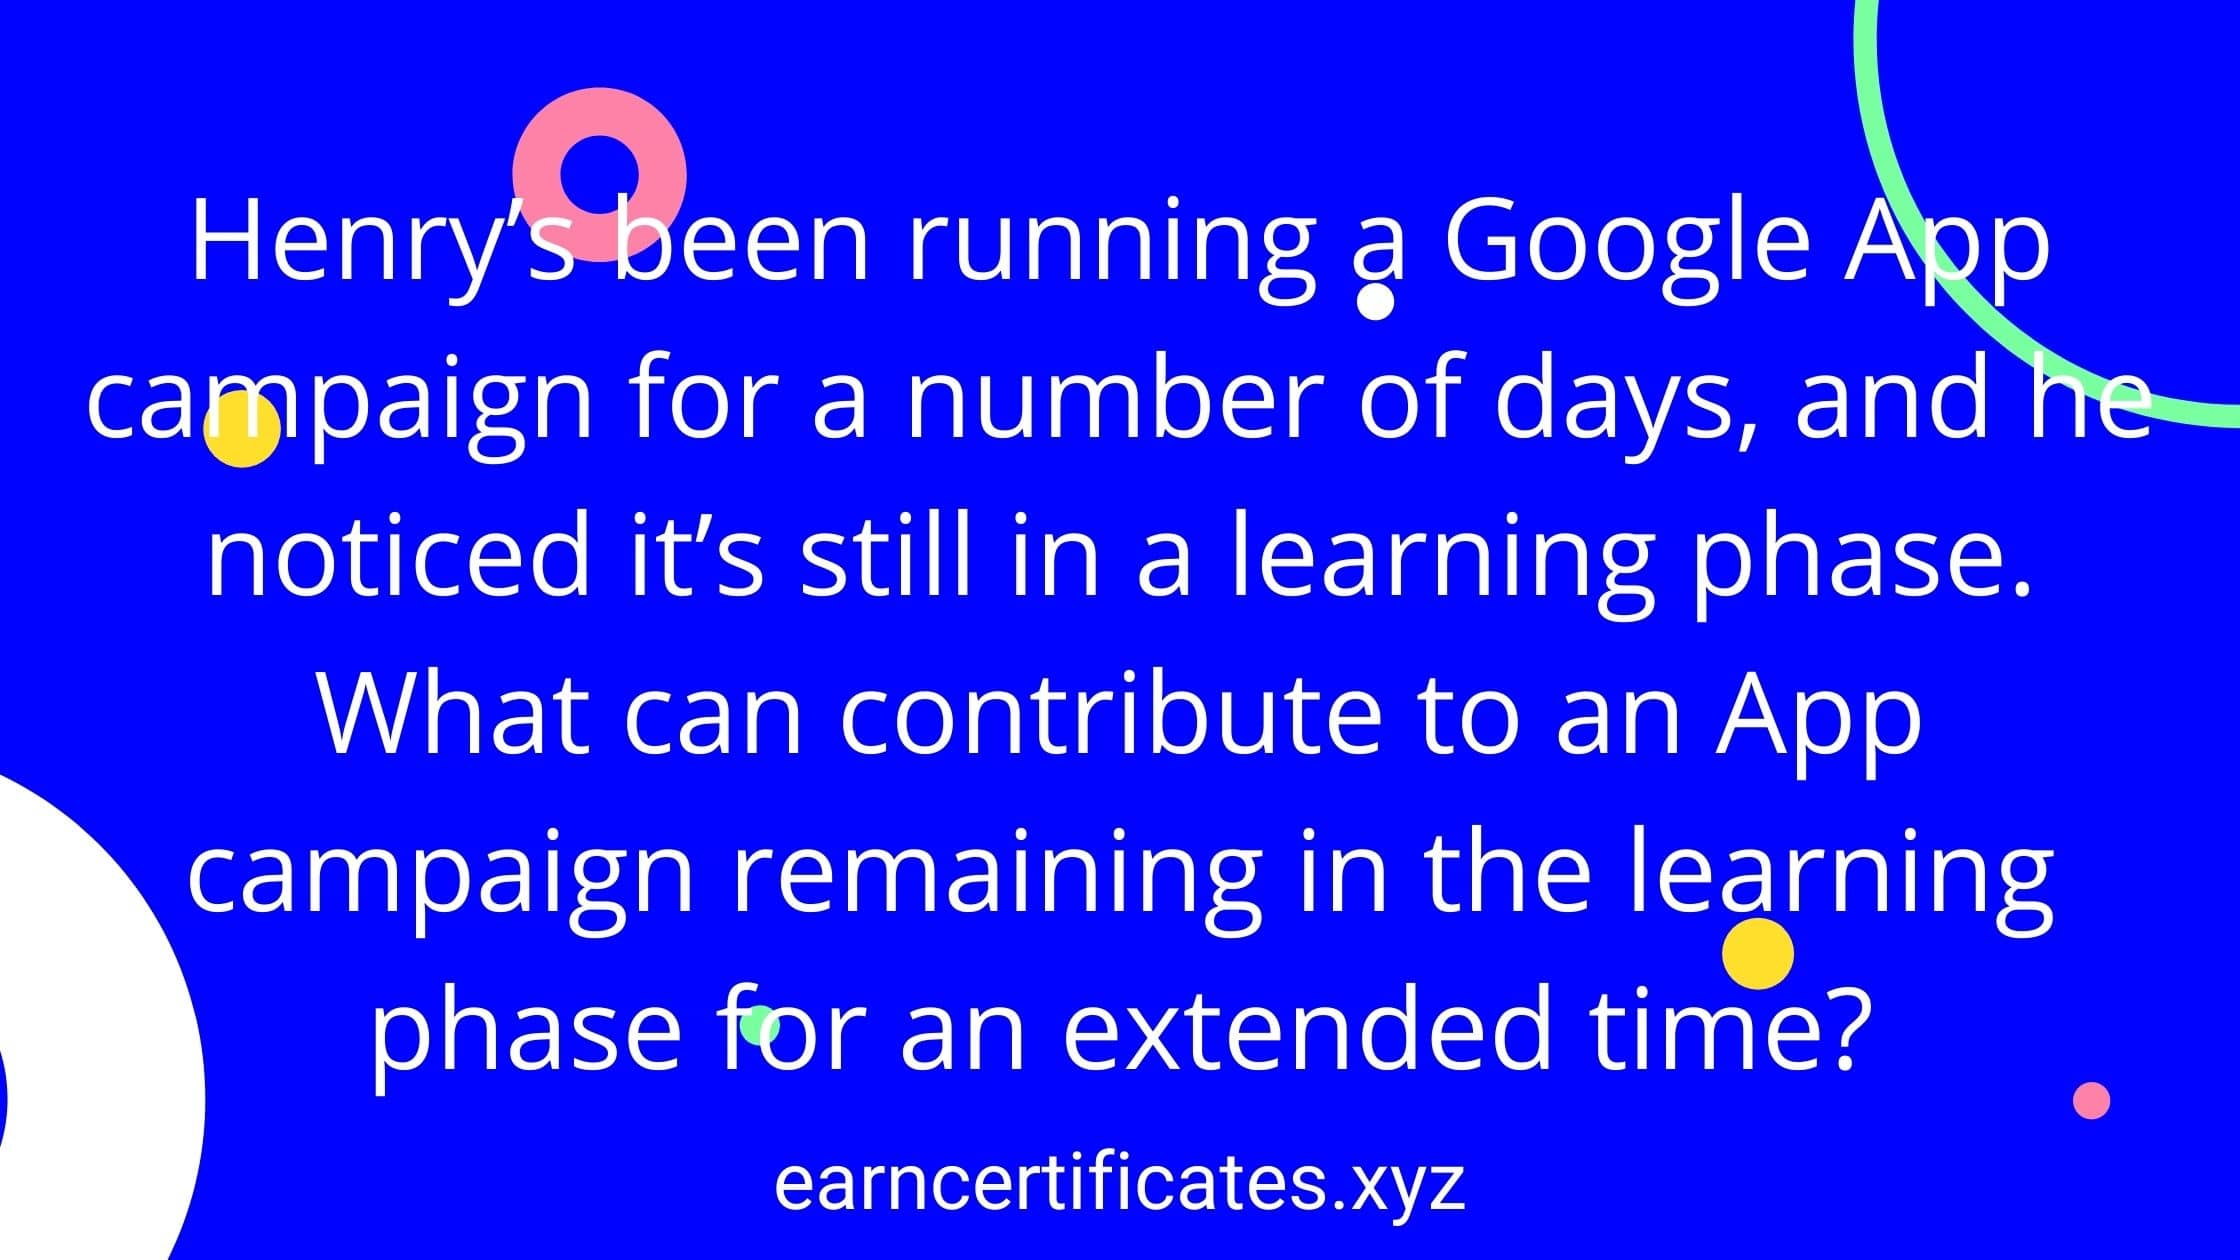 Henry's been running a Google App campaign for a number of days, and he noticed it's still in a learning phase. What can contribute to an App campaign remaining in the learning phase for an extended time?